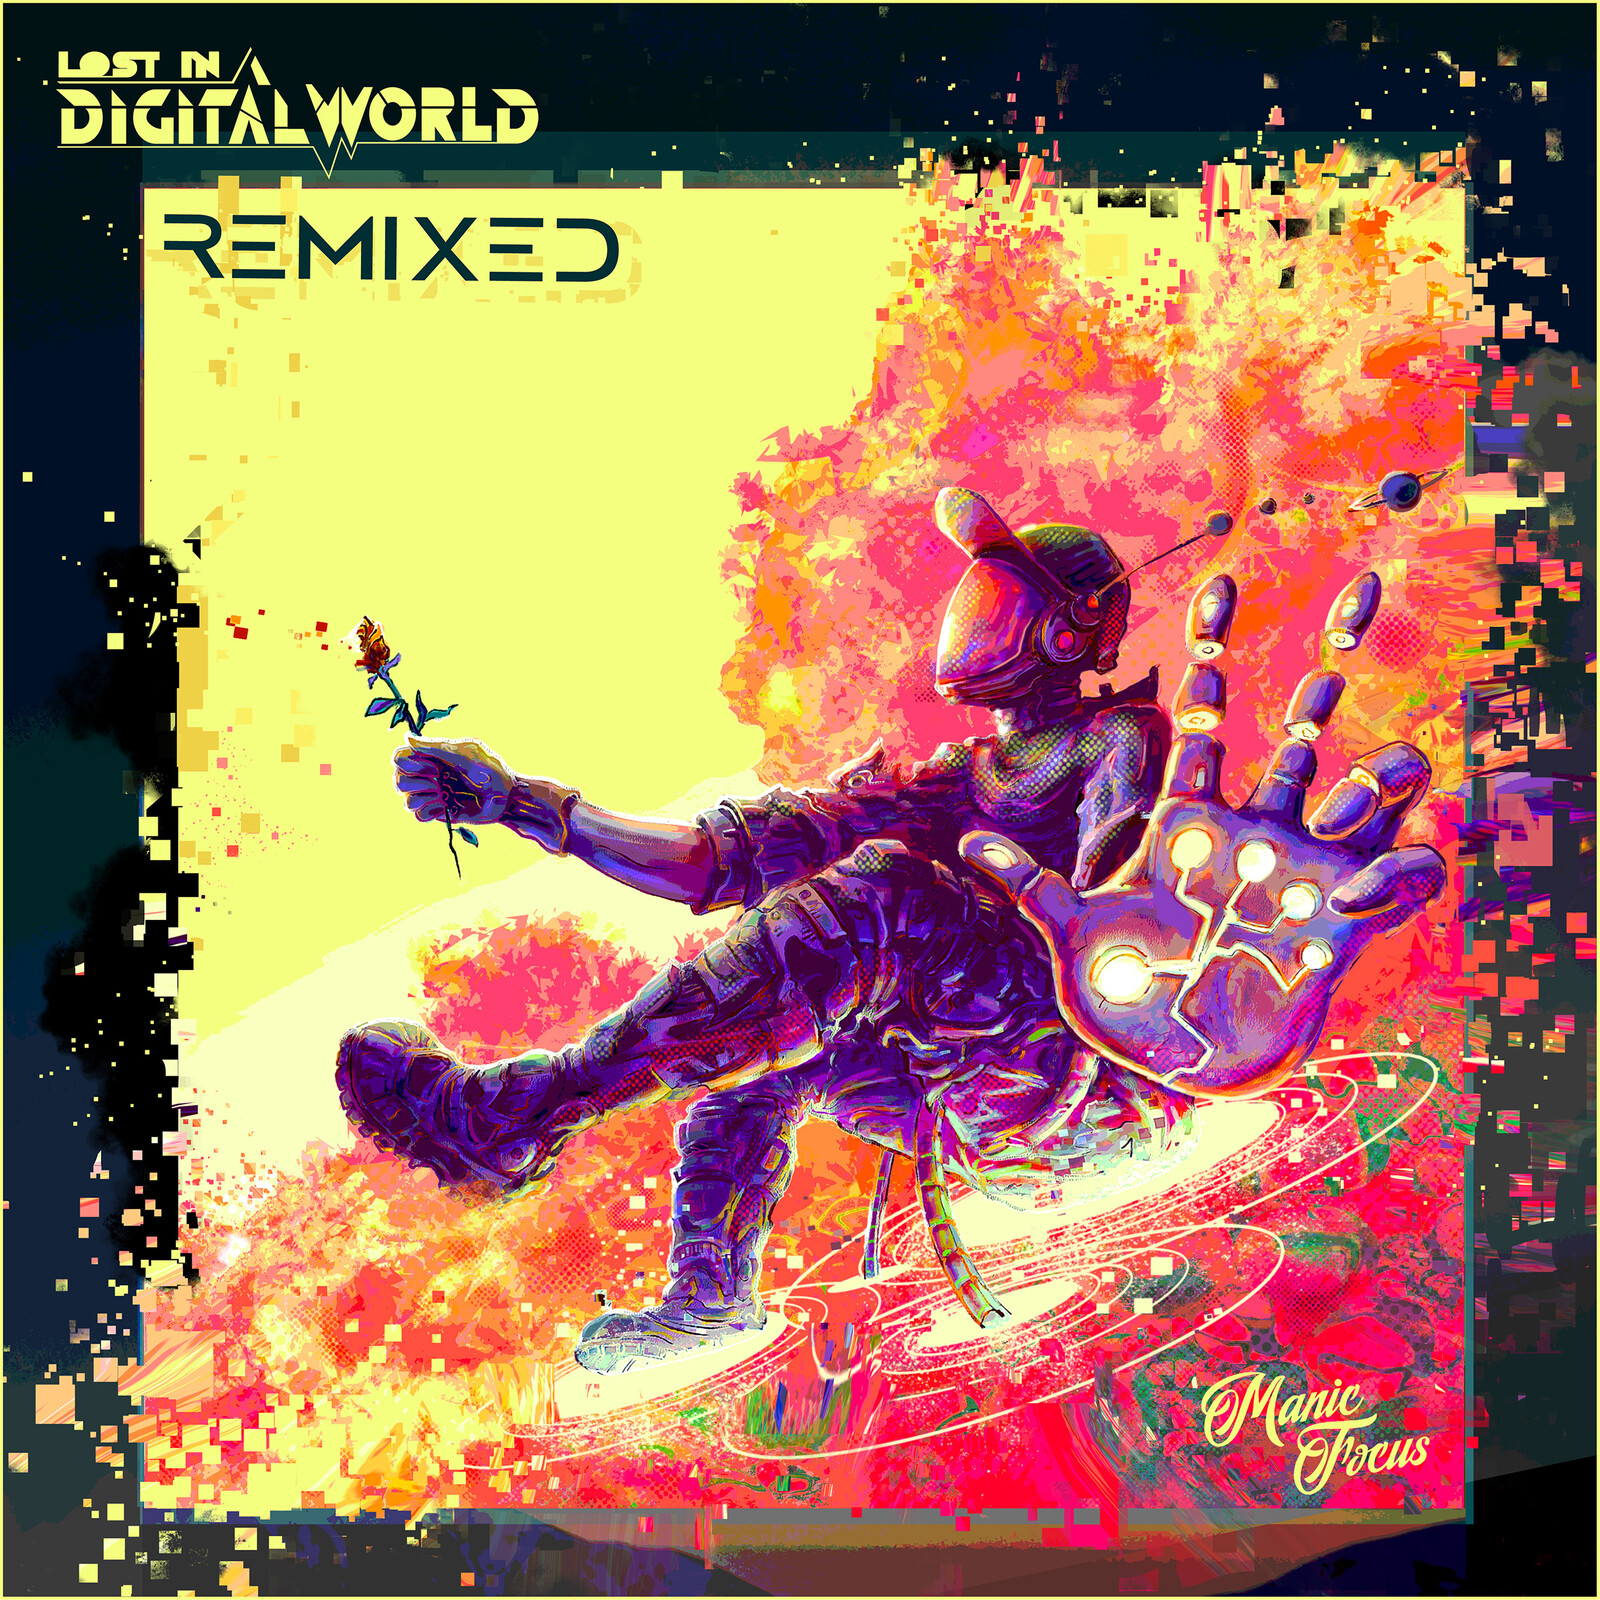 Lost in a Digital World album cover art remix for Manic Focus